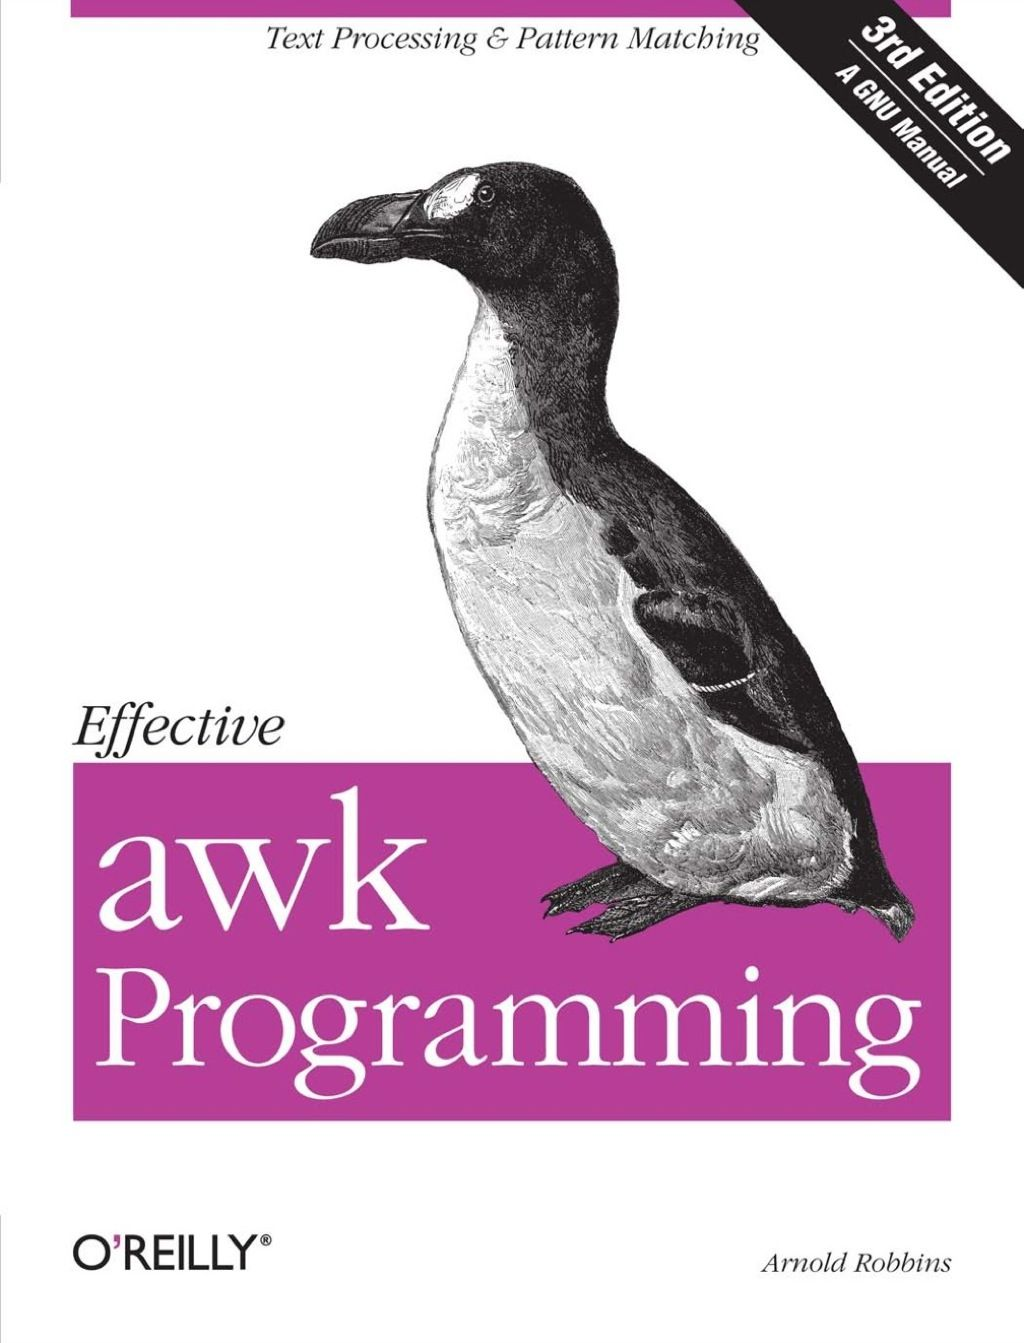 Effective Awk Programming Ebook Rental Books Free Books O Reilly